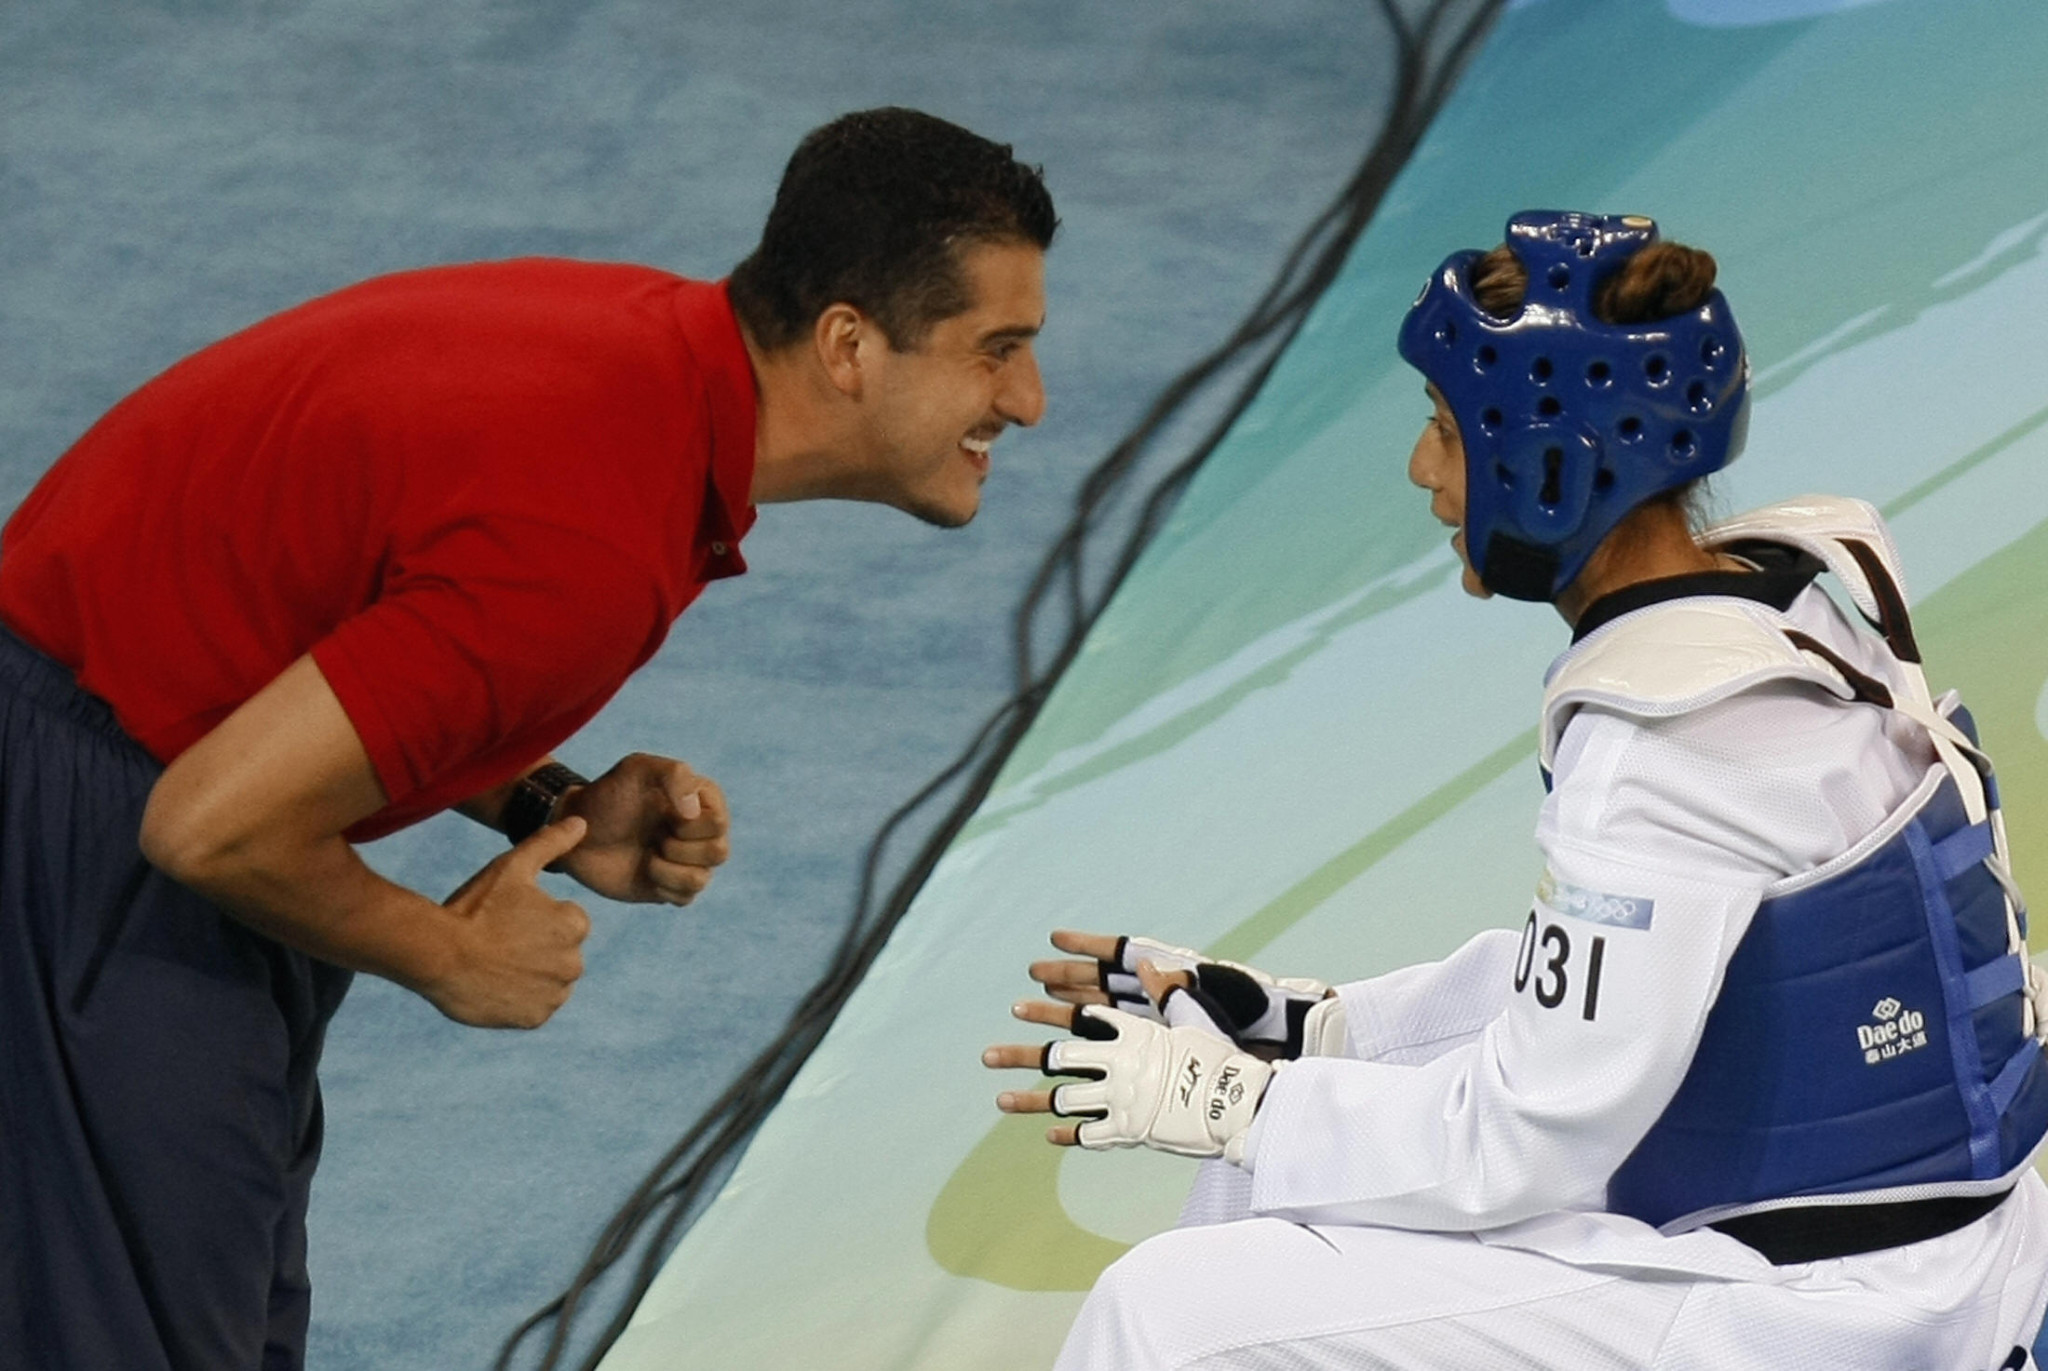 Ex-USA Taekwondo coach and brother of Olympic champion banned for sexual misconduct